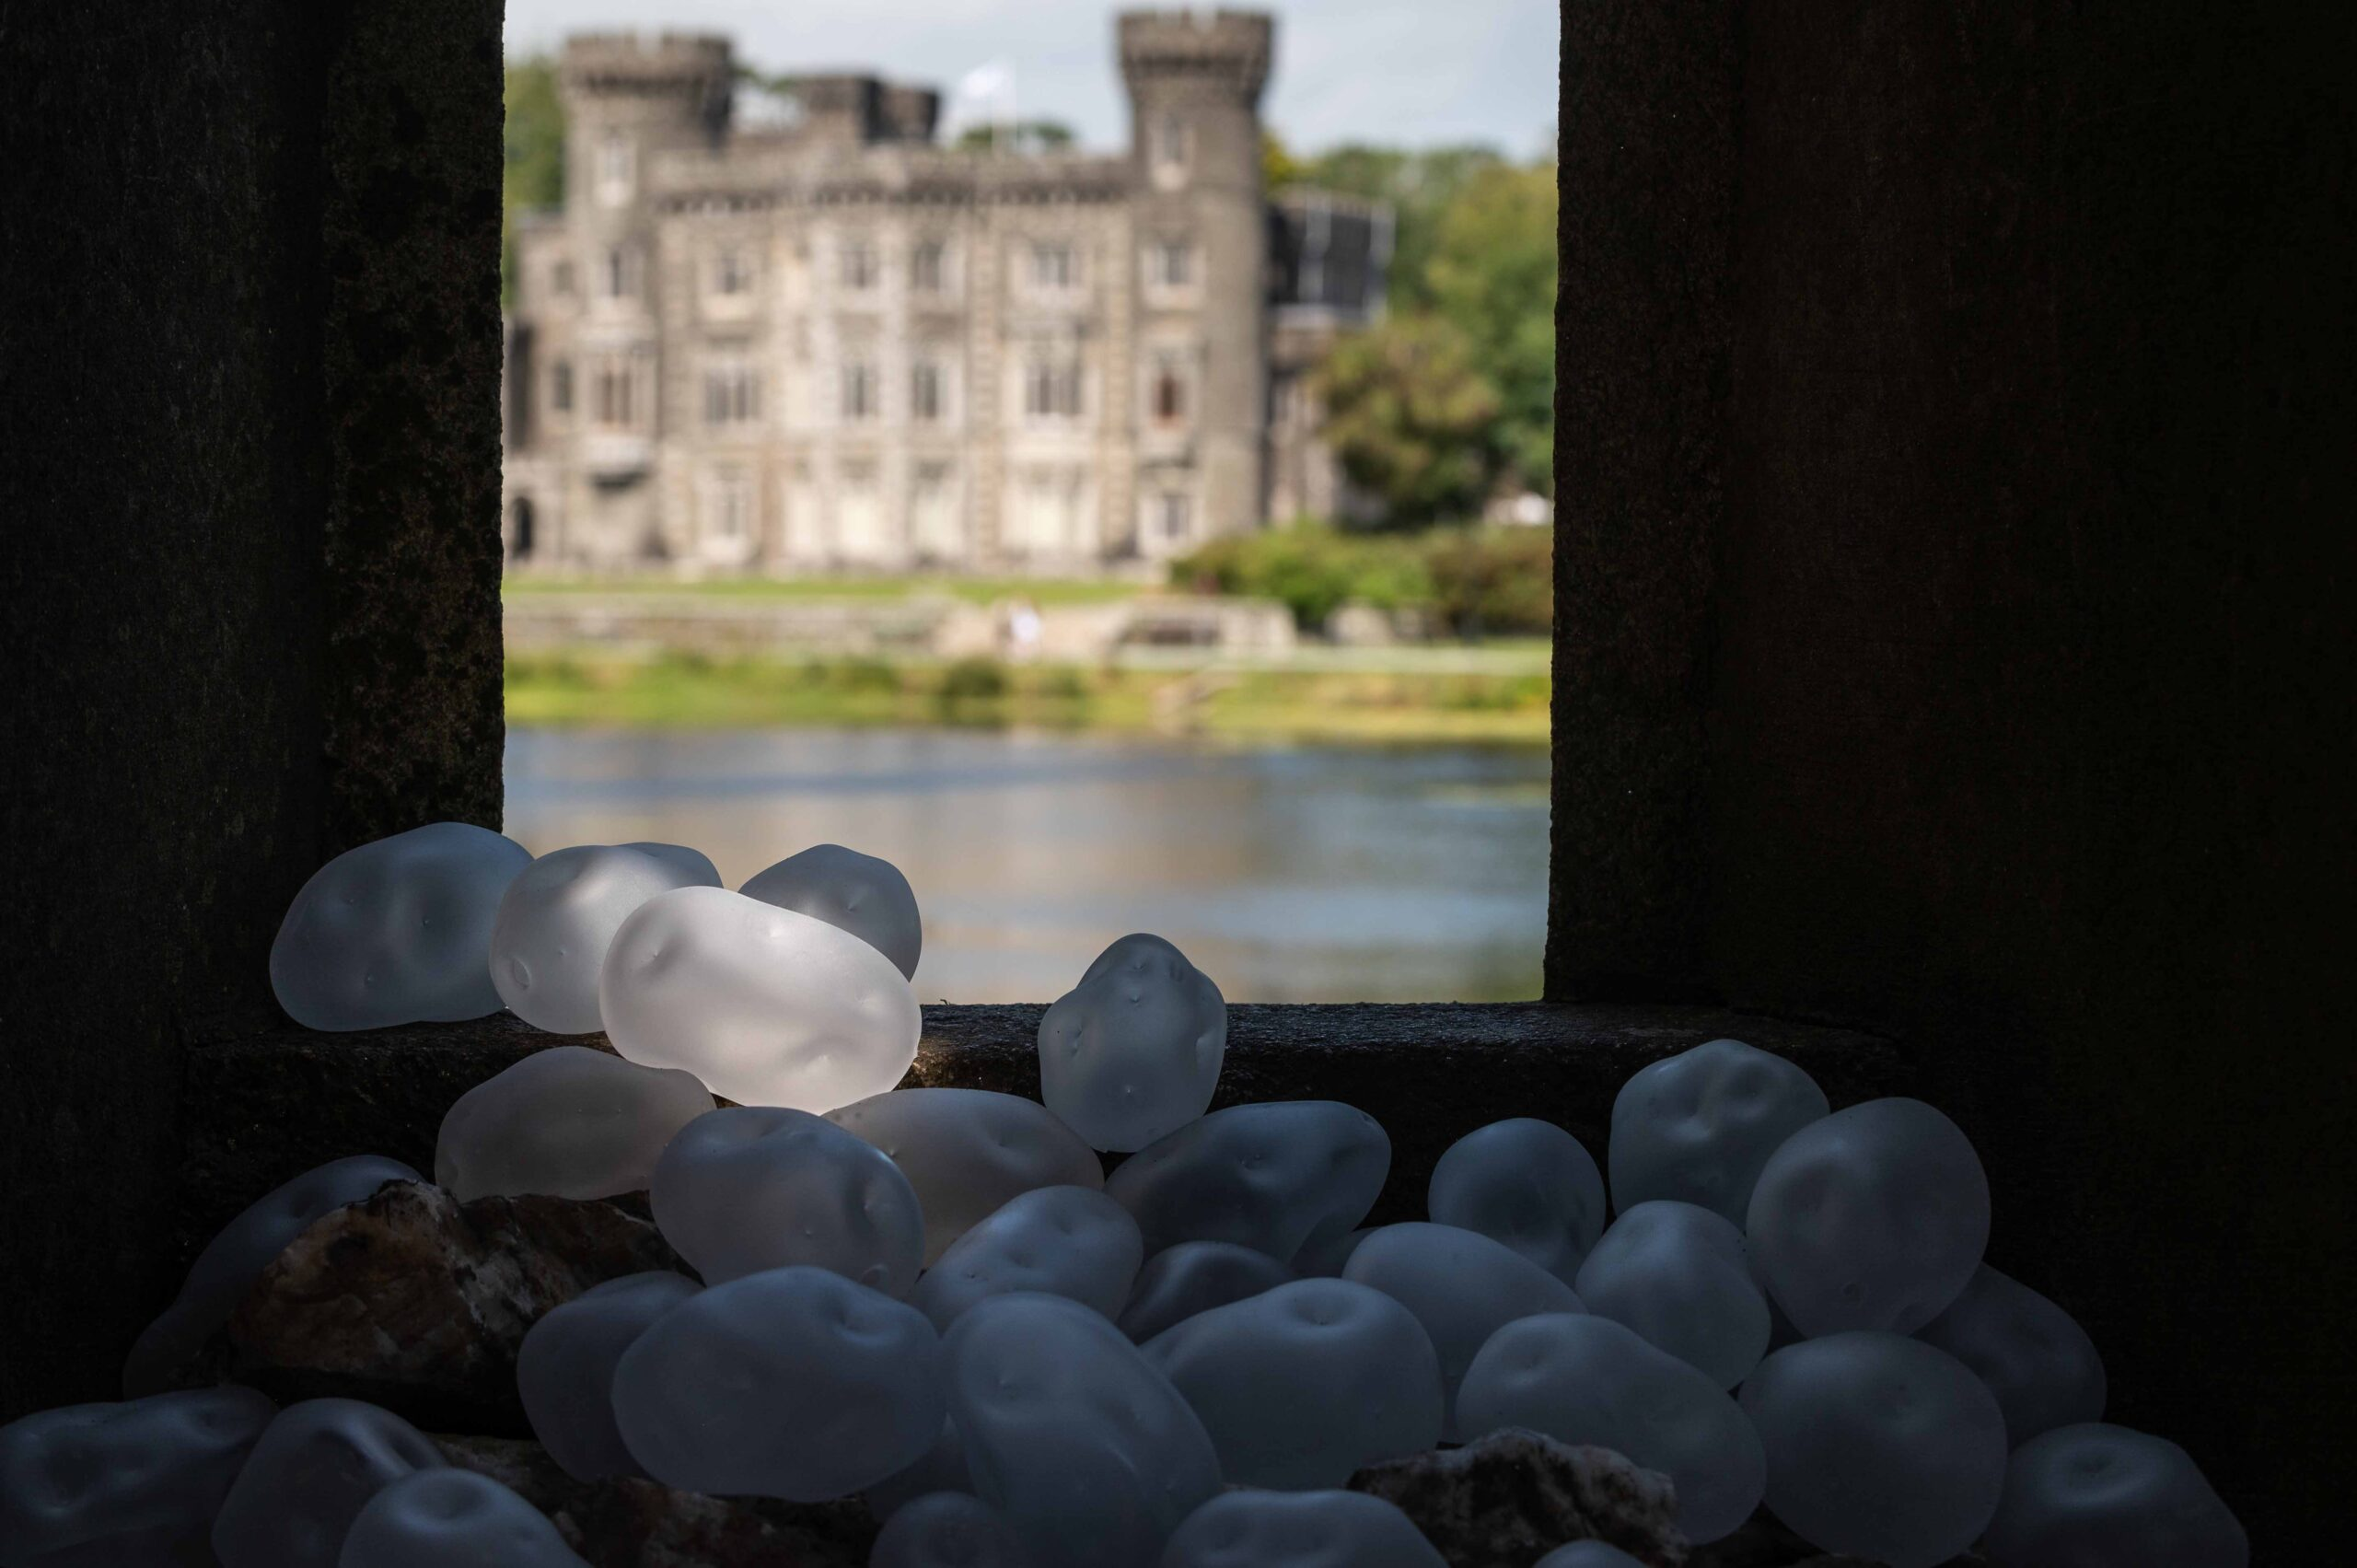 glass potatoes in tower overlooking lake and castle